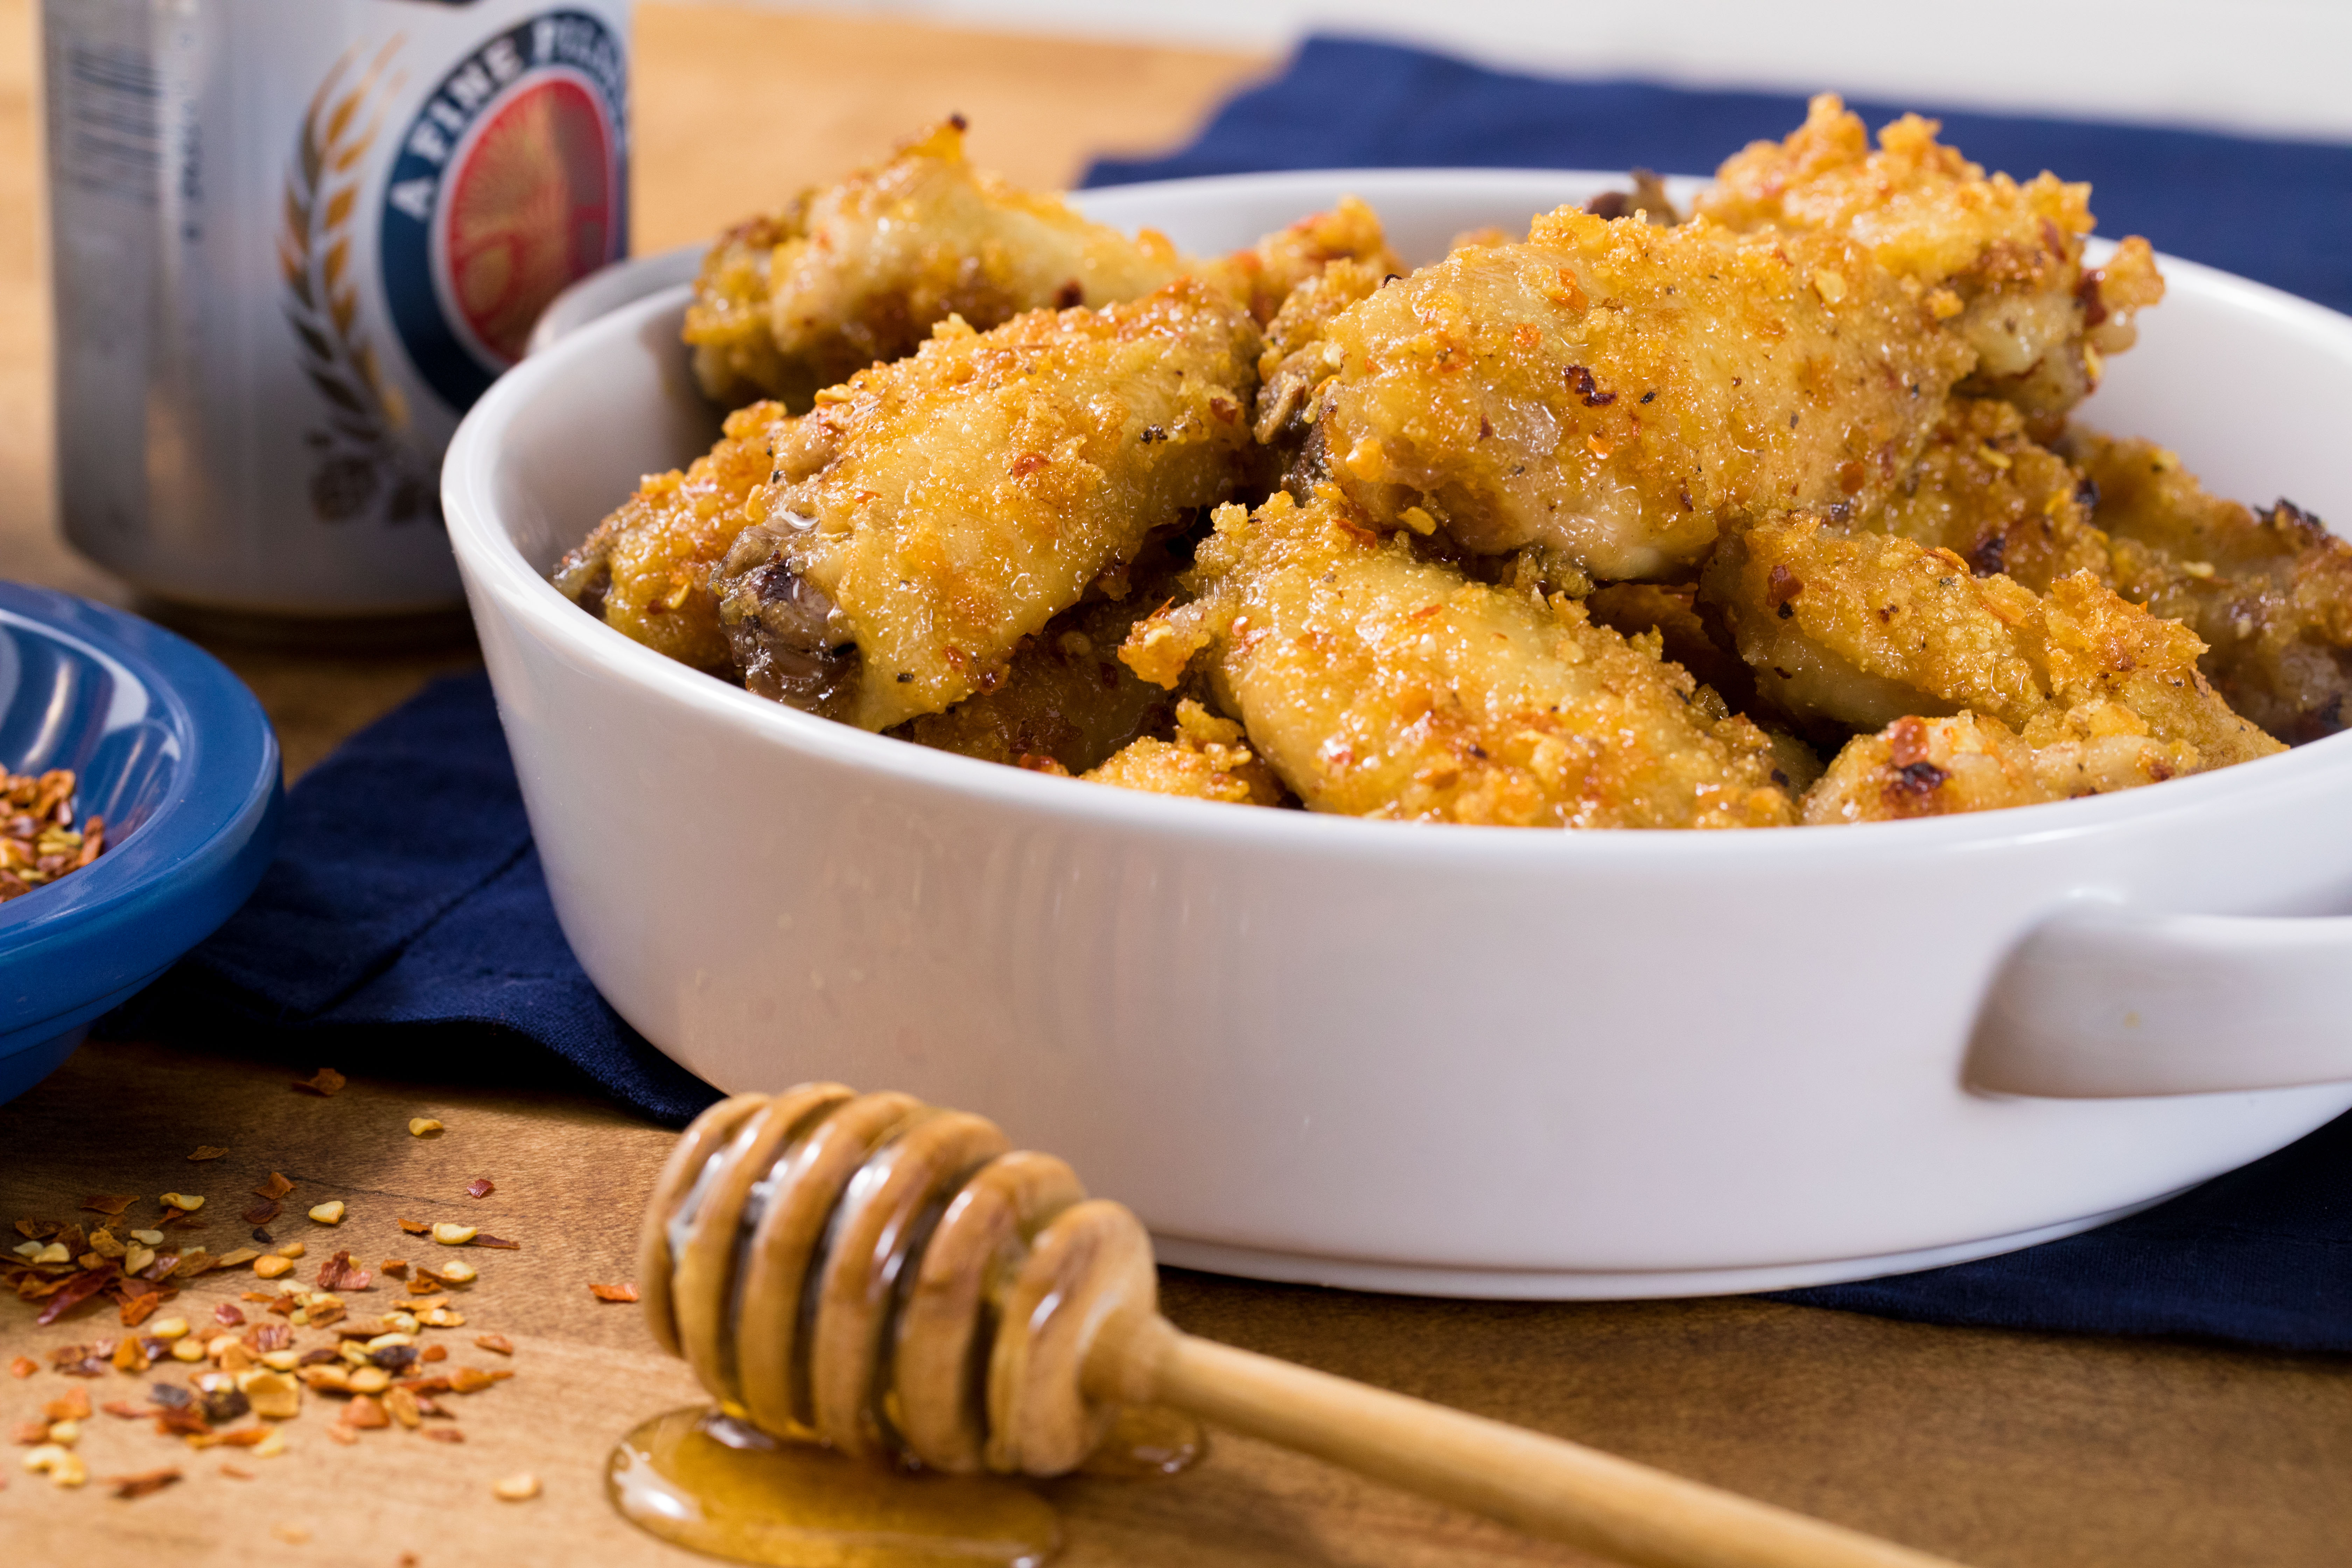 Super Crunch Oven Cooked Honey Dipped Wings Boomdog02